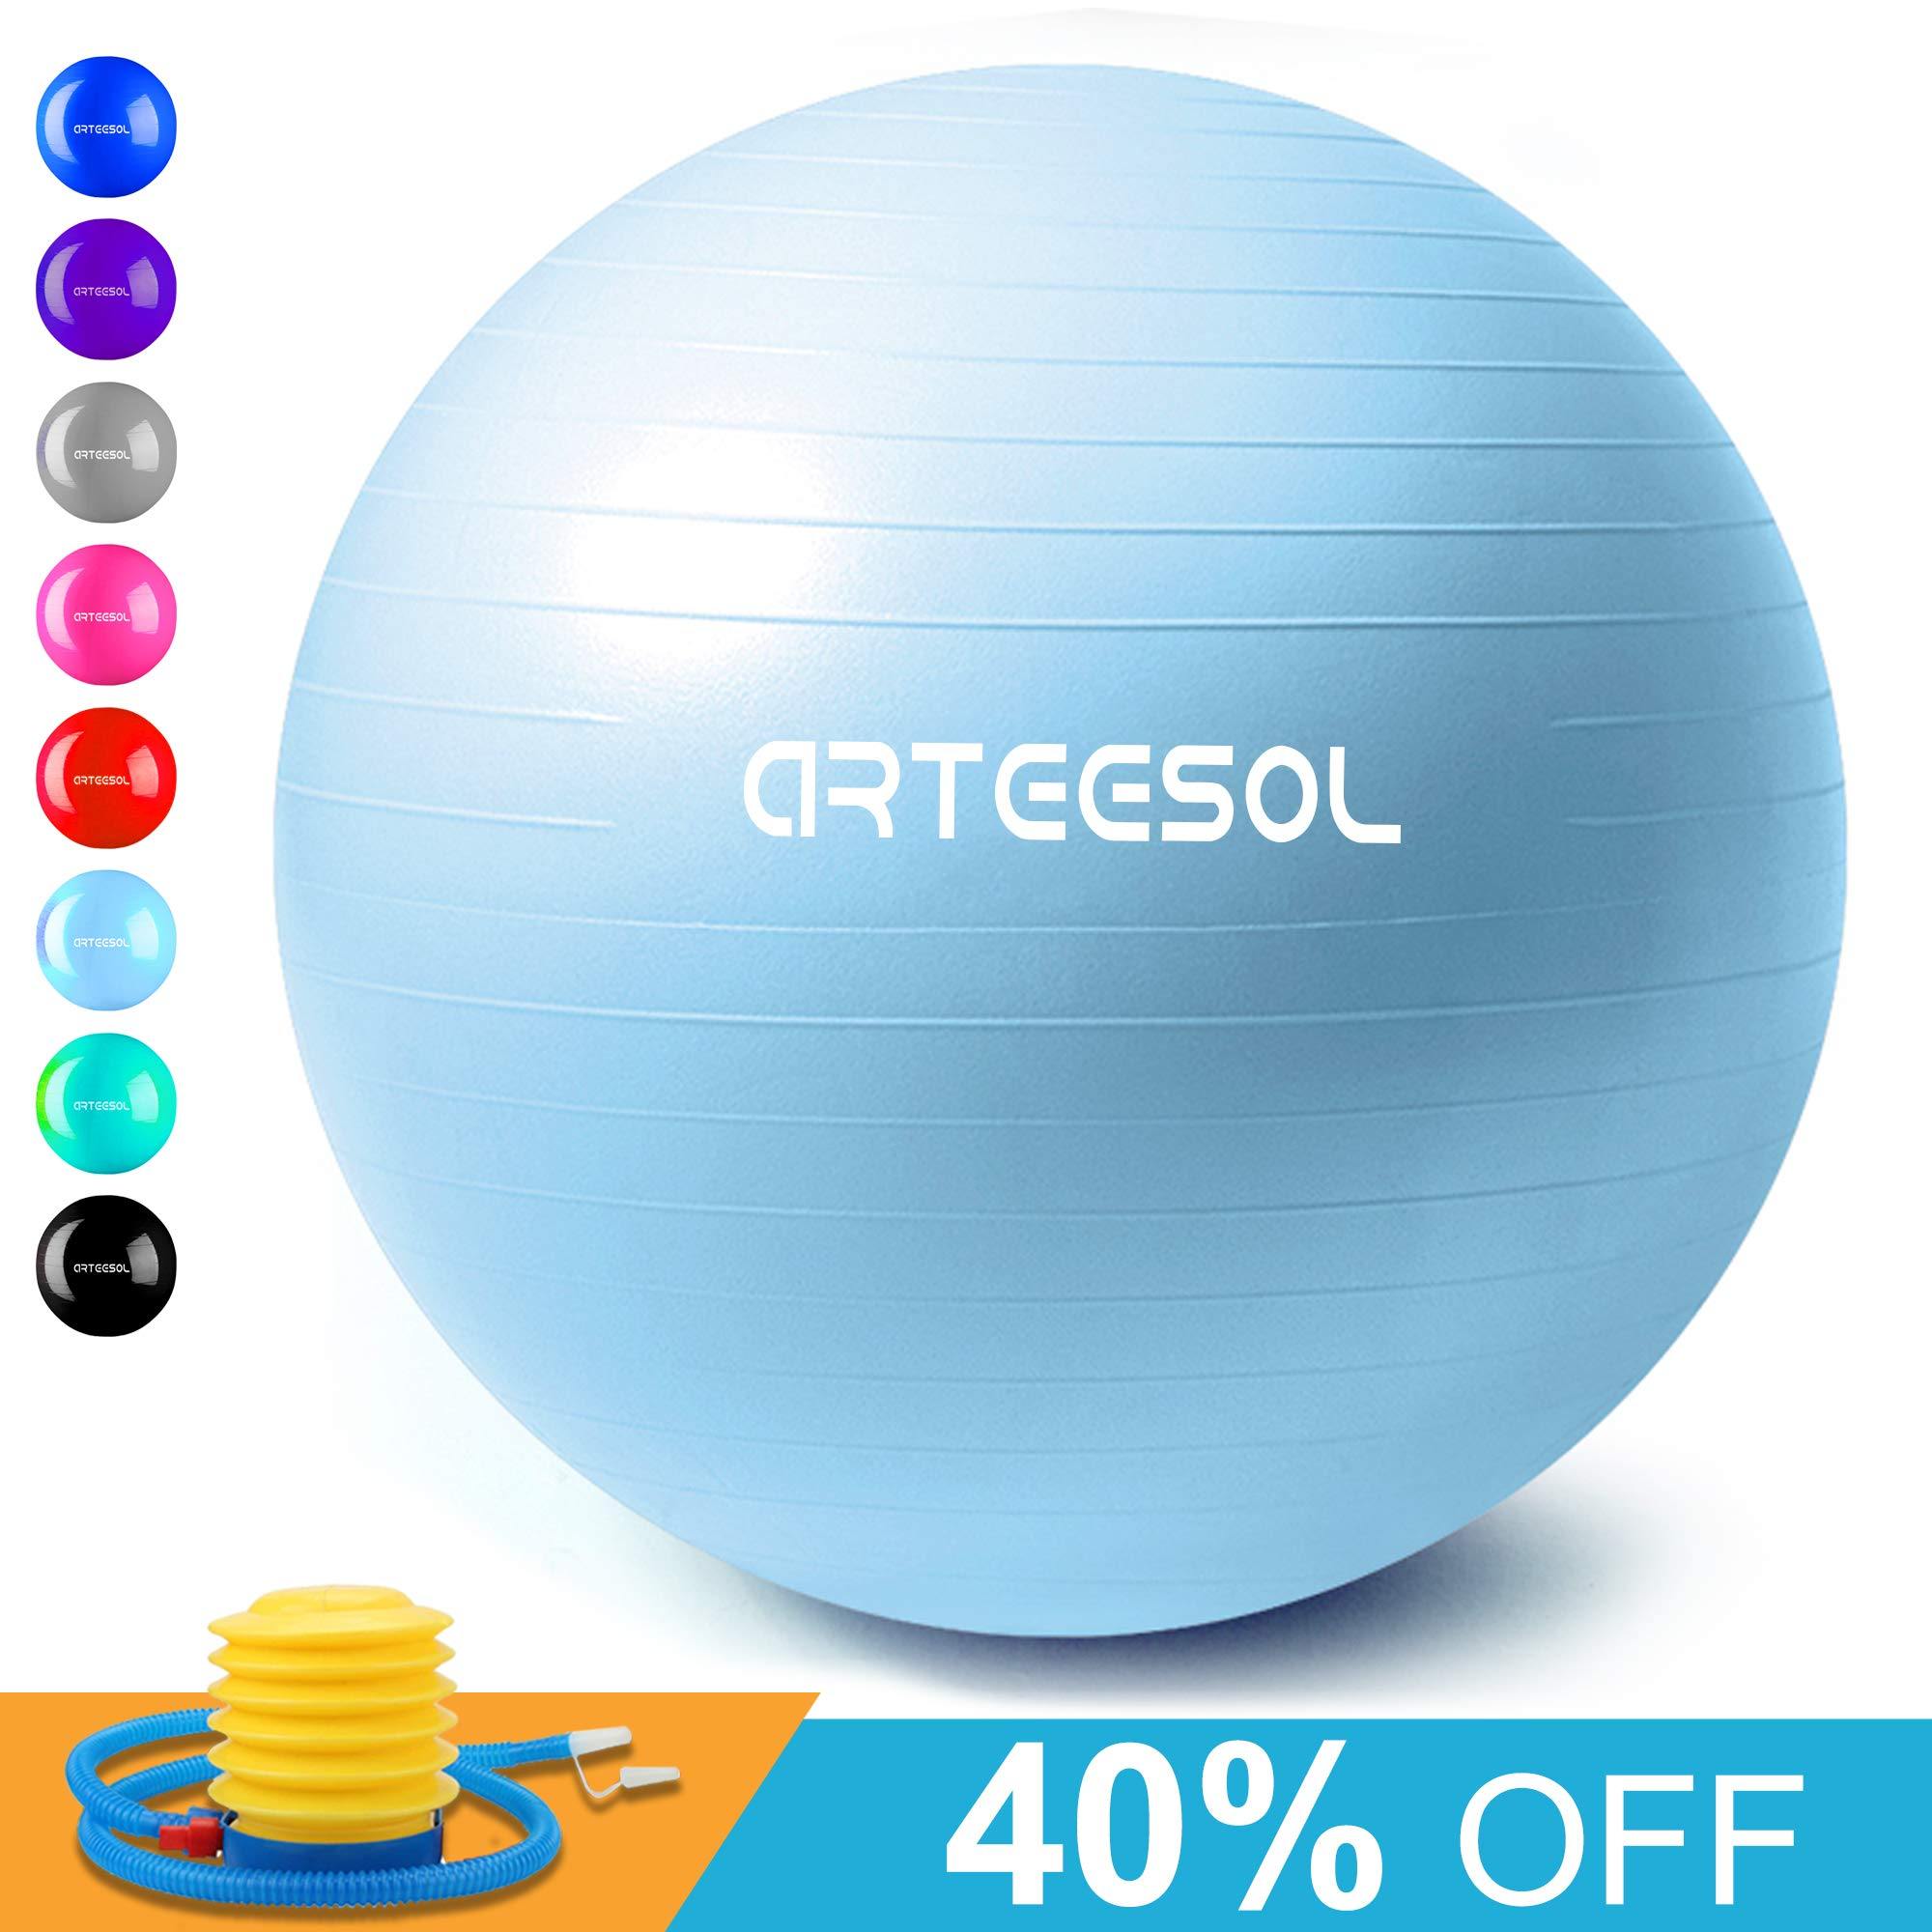 arteesol Exercise Yoga Ball, Extra Thick Stability Balance Ball (45-75cm), Professional Grade Anti Burst&Slip Resistant Balance, Fitness&Physical Therapy, Birthing Ball with Air Pump (Moonblue, 55cm)